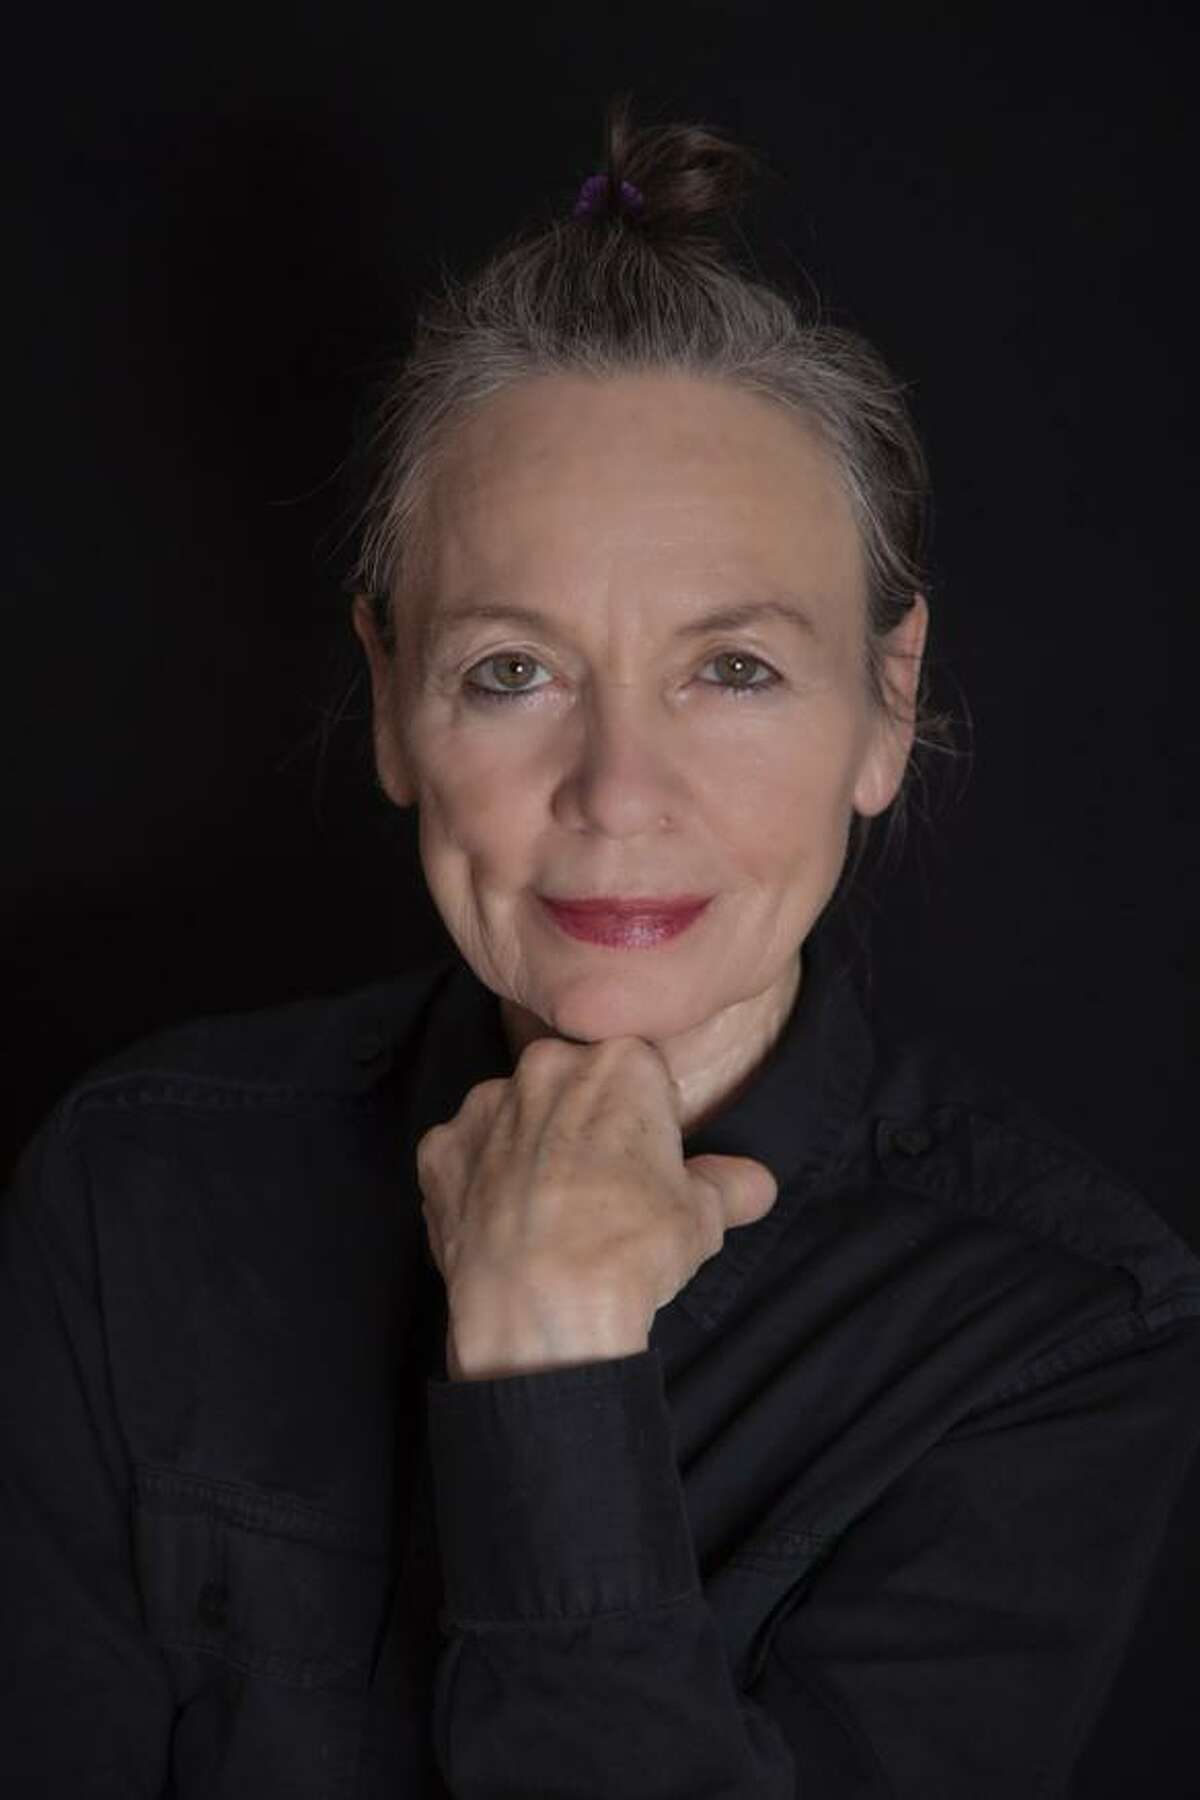 Performance artist Laurie Anderson joins Timothy Morton for the keynote talk of A Night of Philosophy and Ideas at Moody Center for the Arts on Jan. 26.